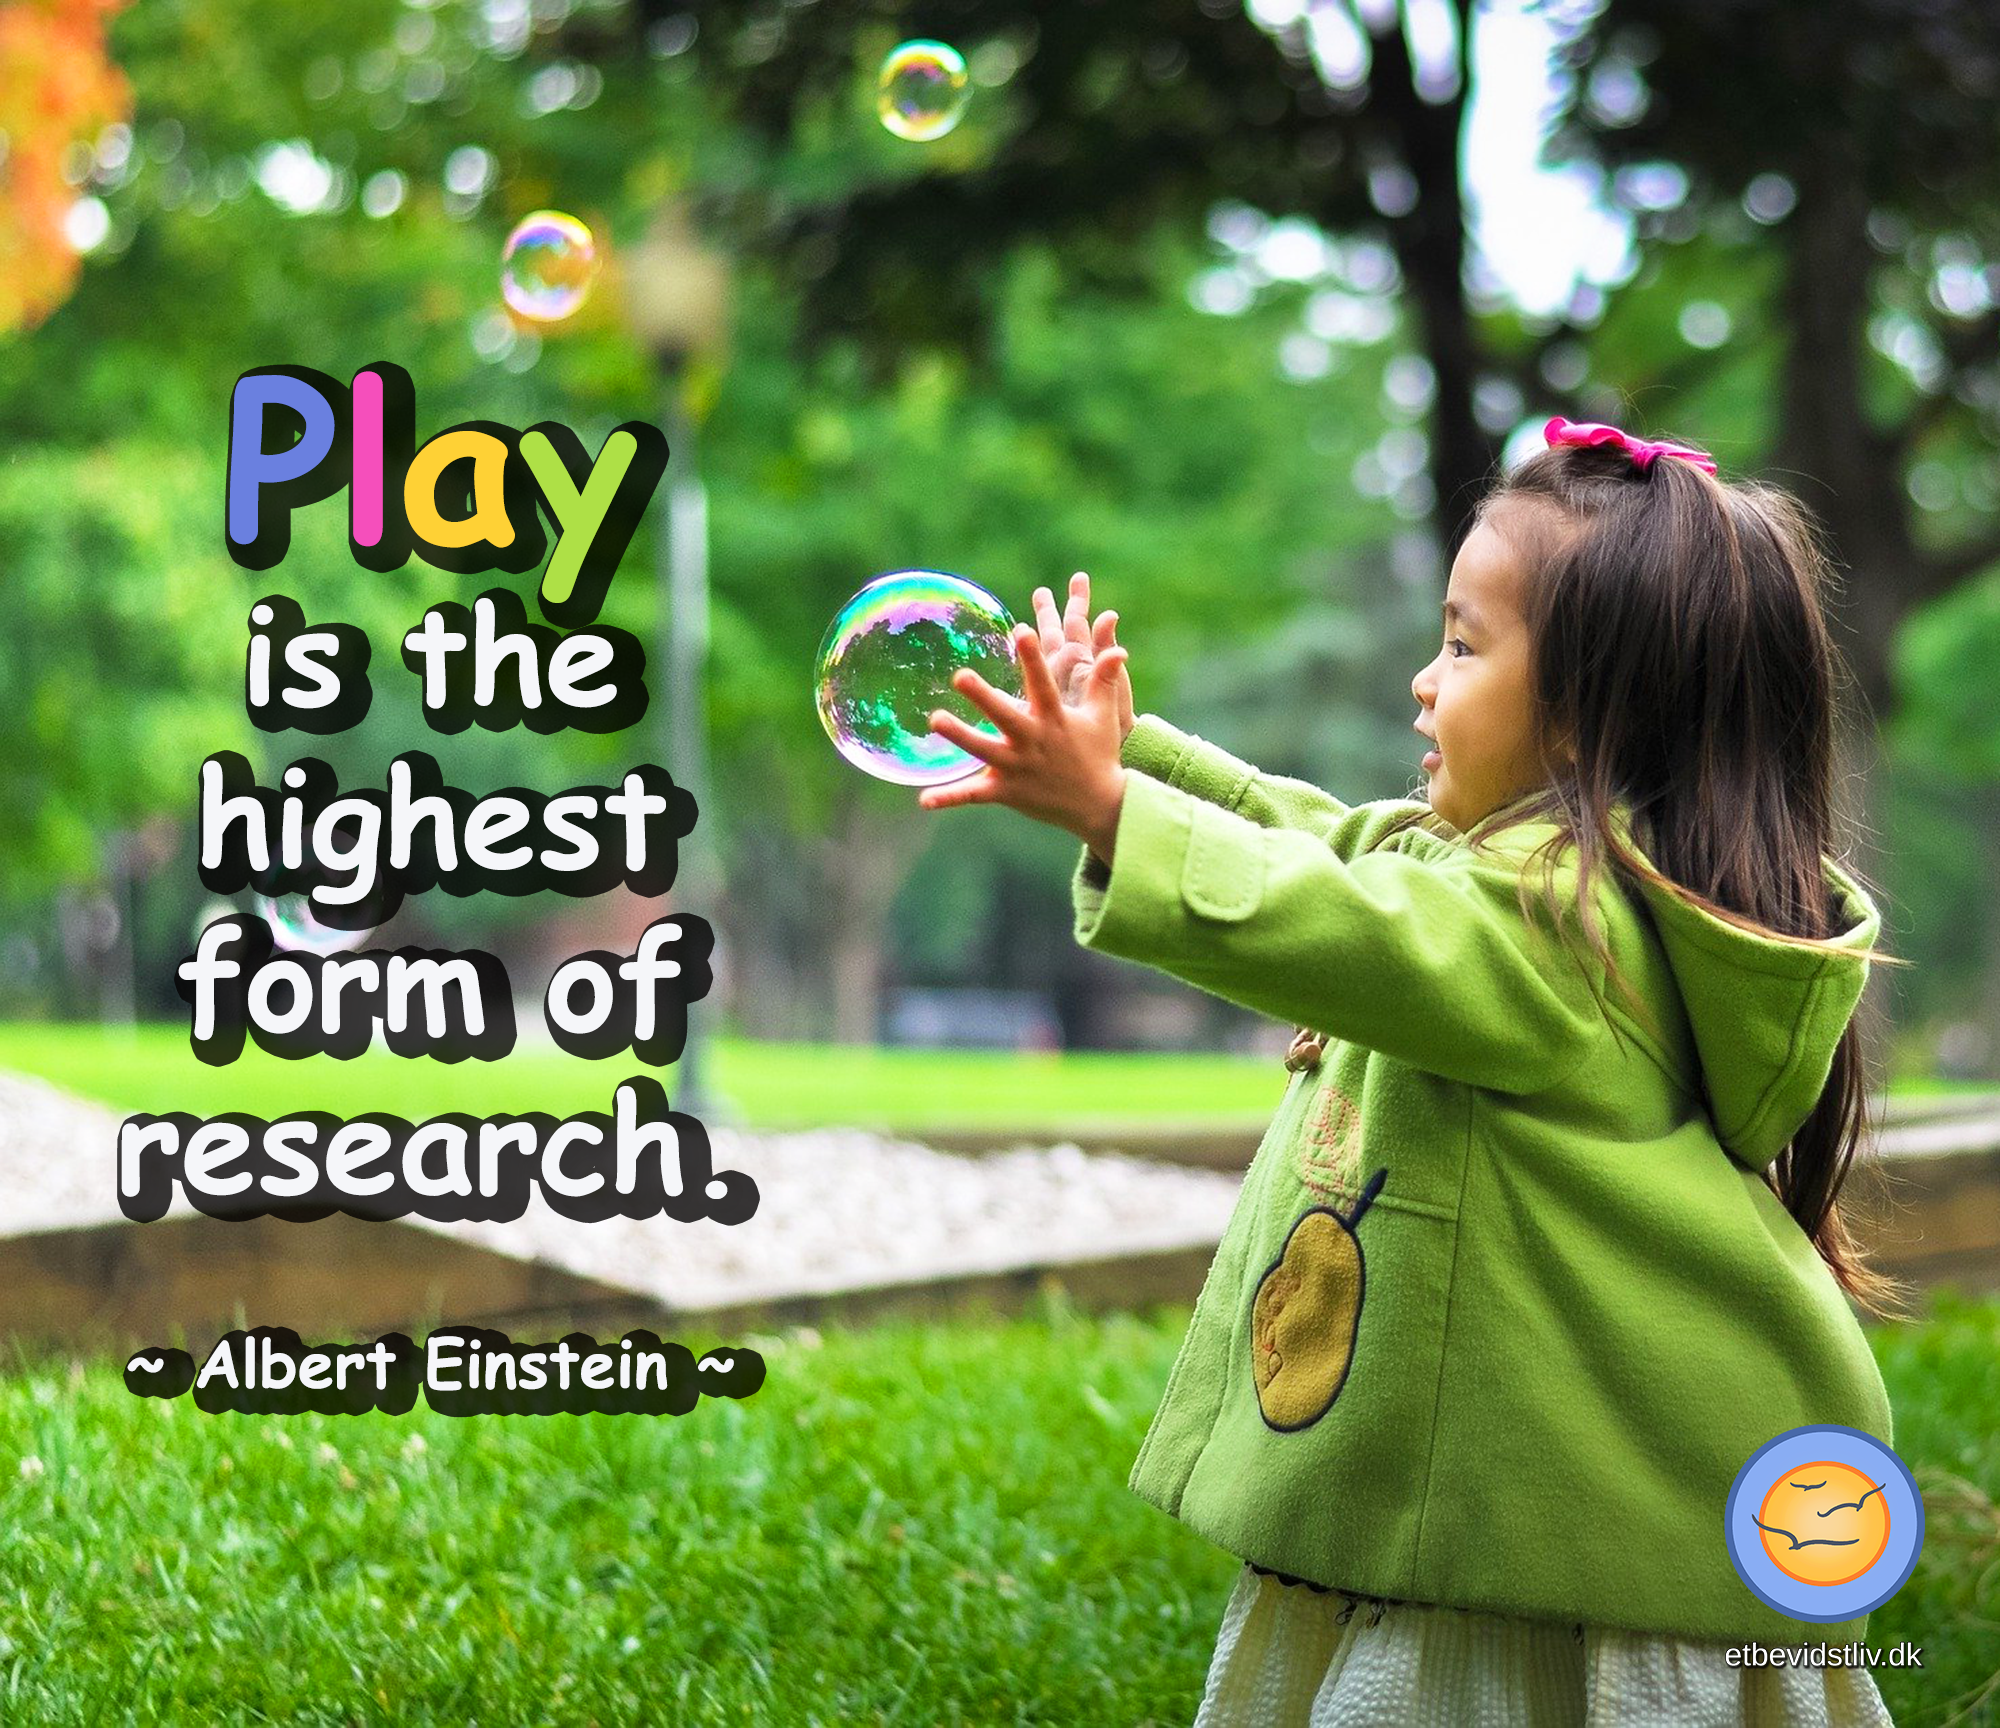 Citat af Albert Einstein: Play is the highest form of research. Lille pige leger med bobler.